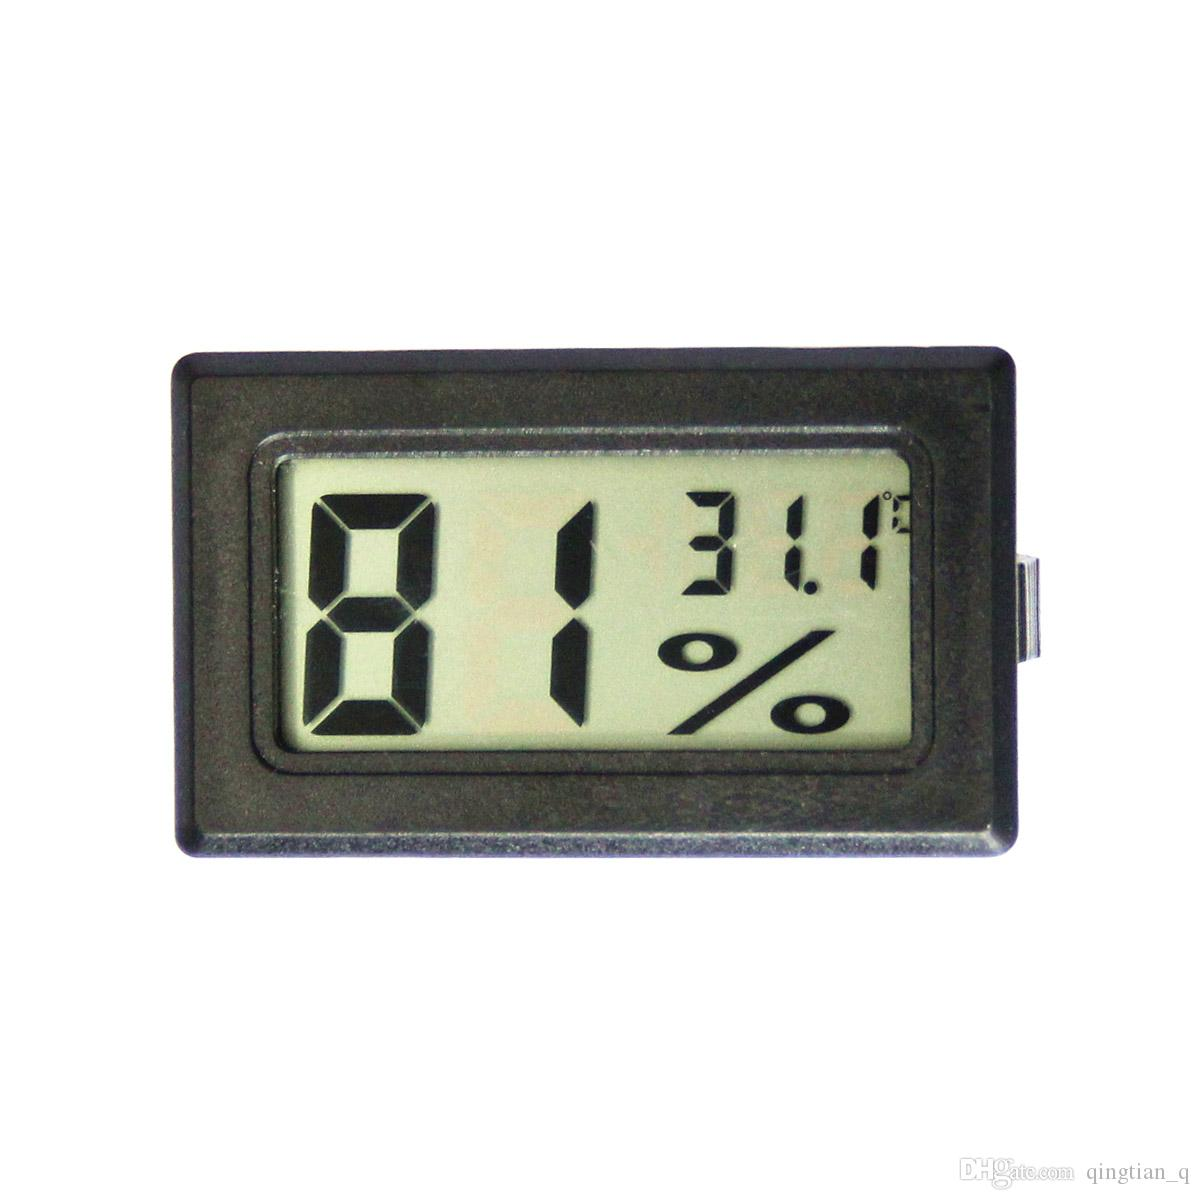 Mini Digital LCD Indoor Temperatur  Humidity Meter Thermometer Hygrometer